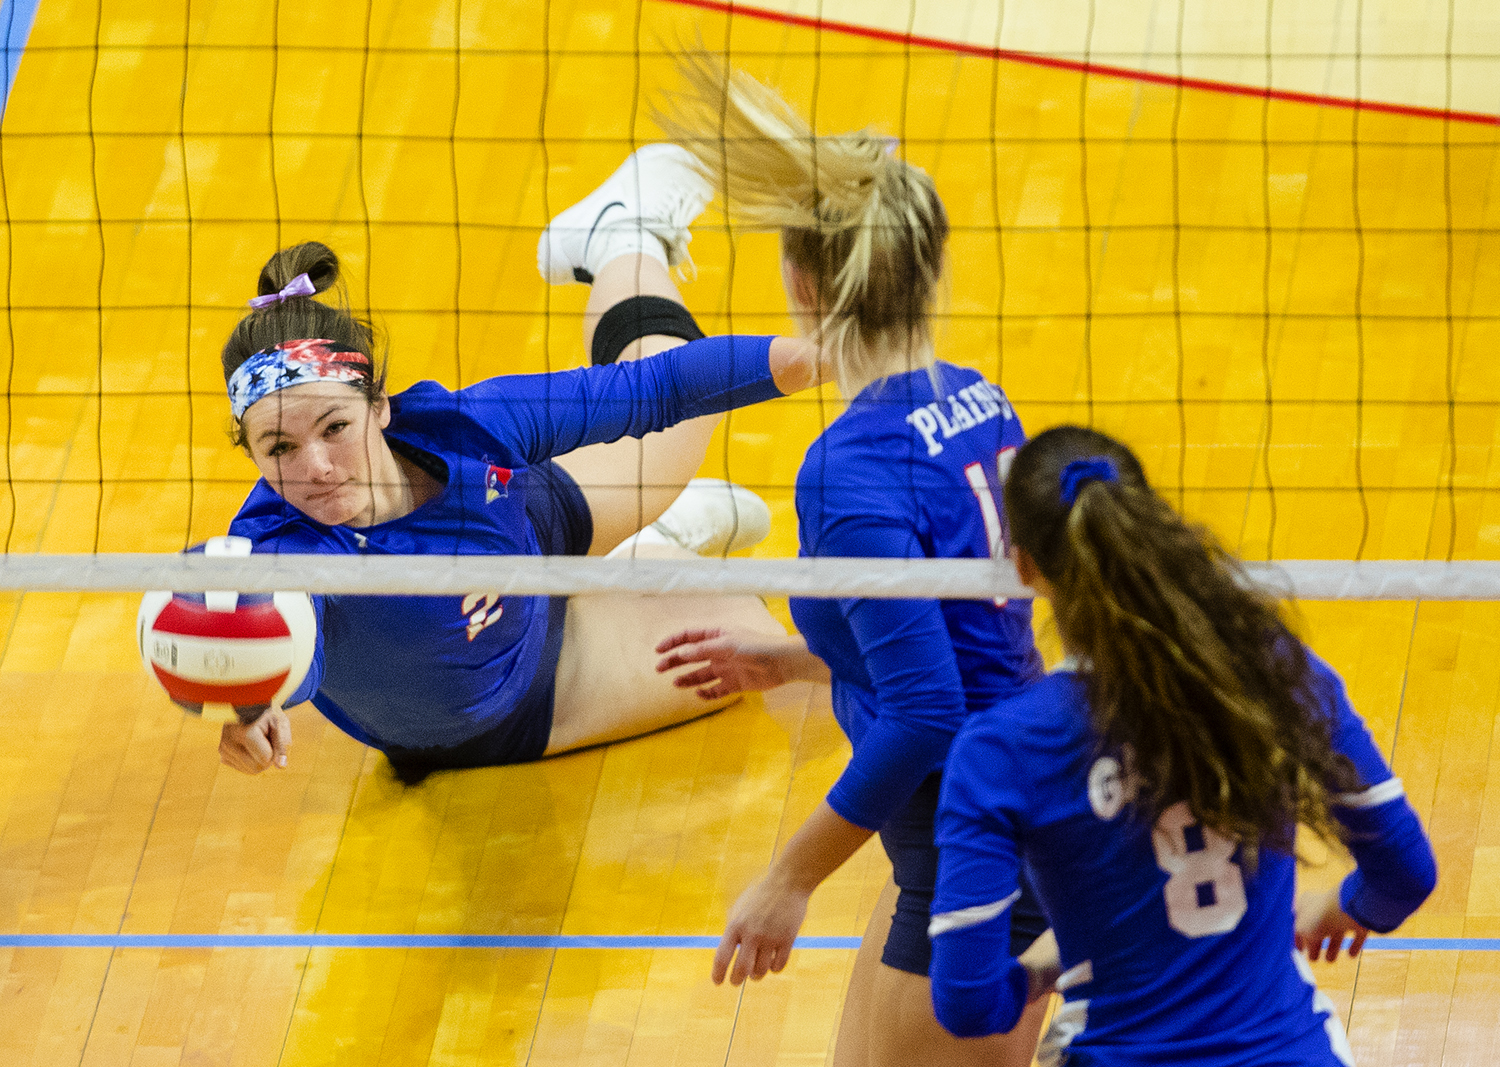 Pleasant Plains' Jade Garrett makes a diving dig against Galena during the IHSA Class 2A Volleyball championship at Redbird Arena in Normal Saturday, Nov. 10, 2018. [Ted Schurter/The State Journal-Register]